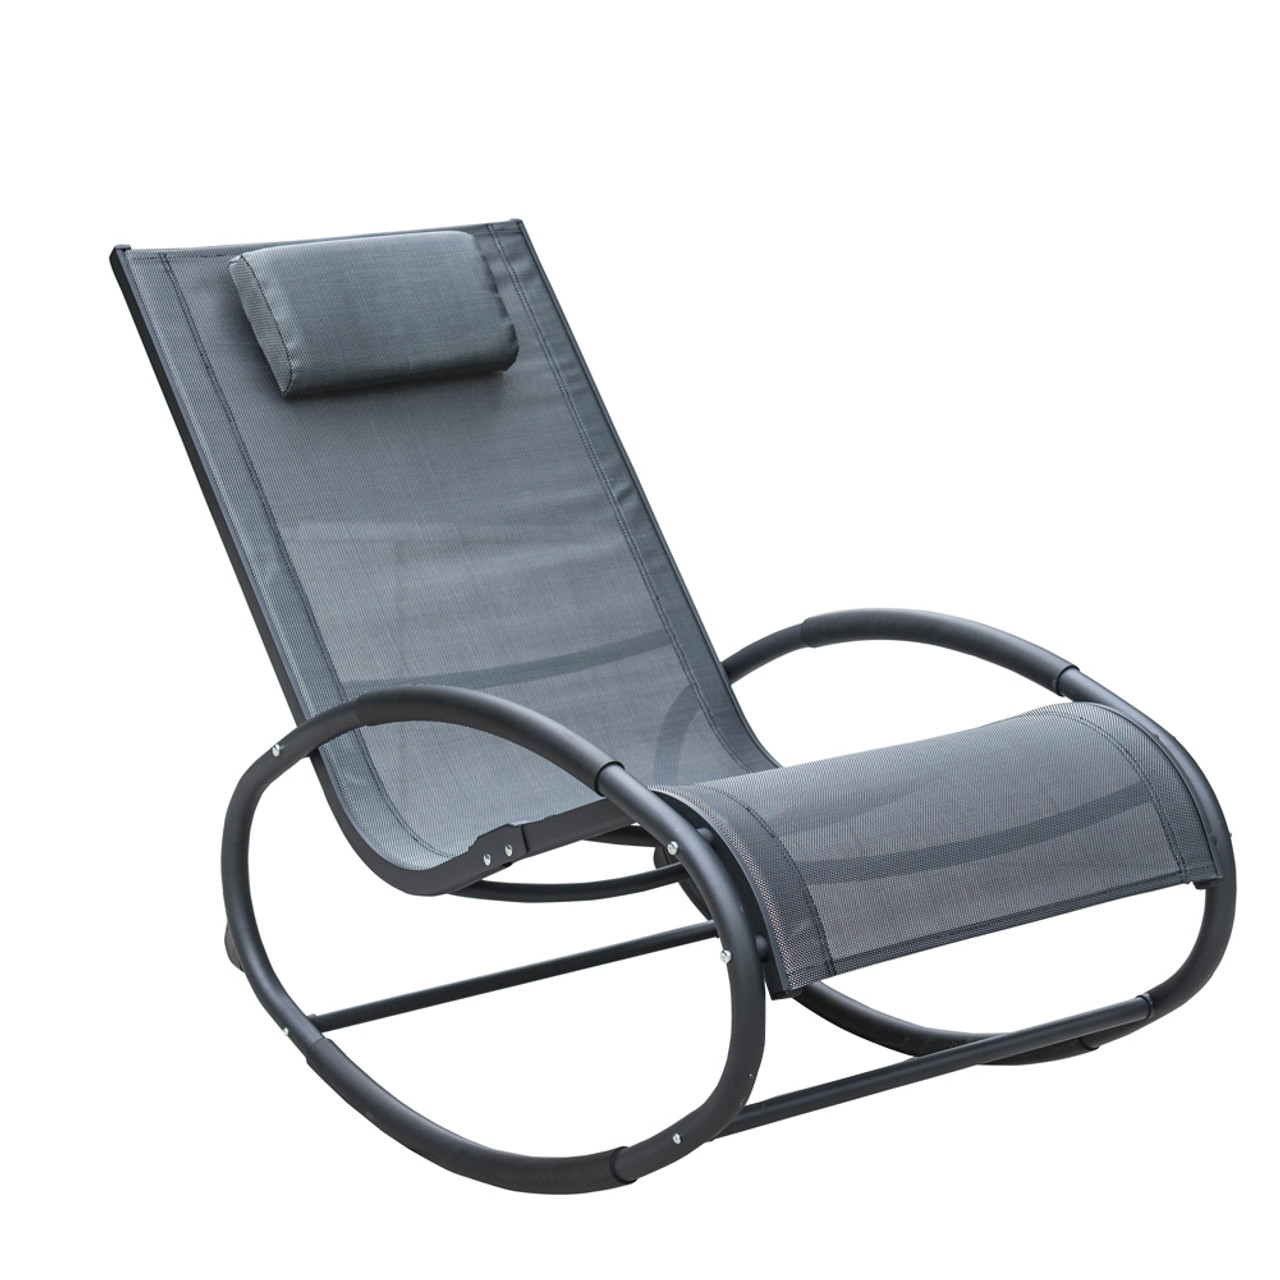 Patio gravity chair - Patio Aluminum Zero Gravity Chair Orbital Rocking Lounge Chair With Pillow Capacity 250 Pounds